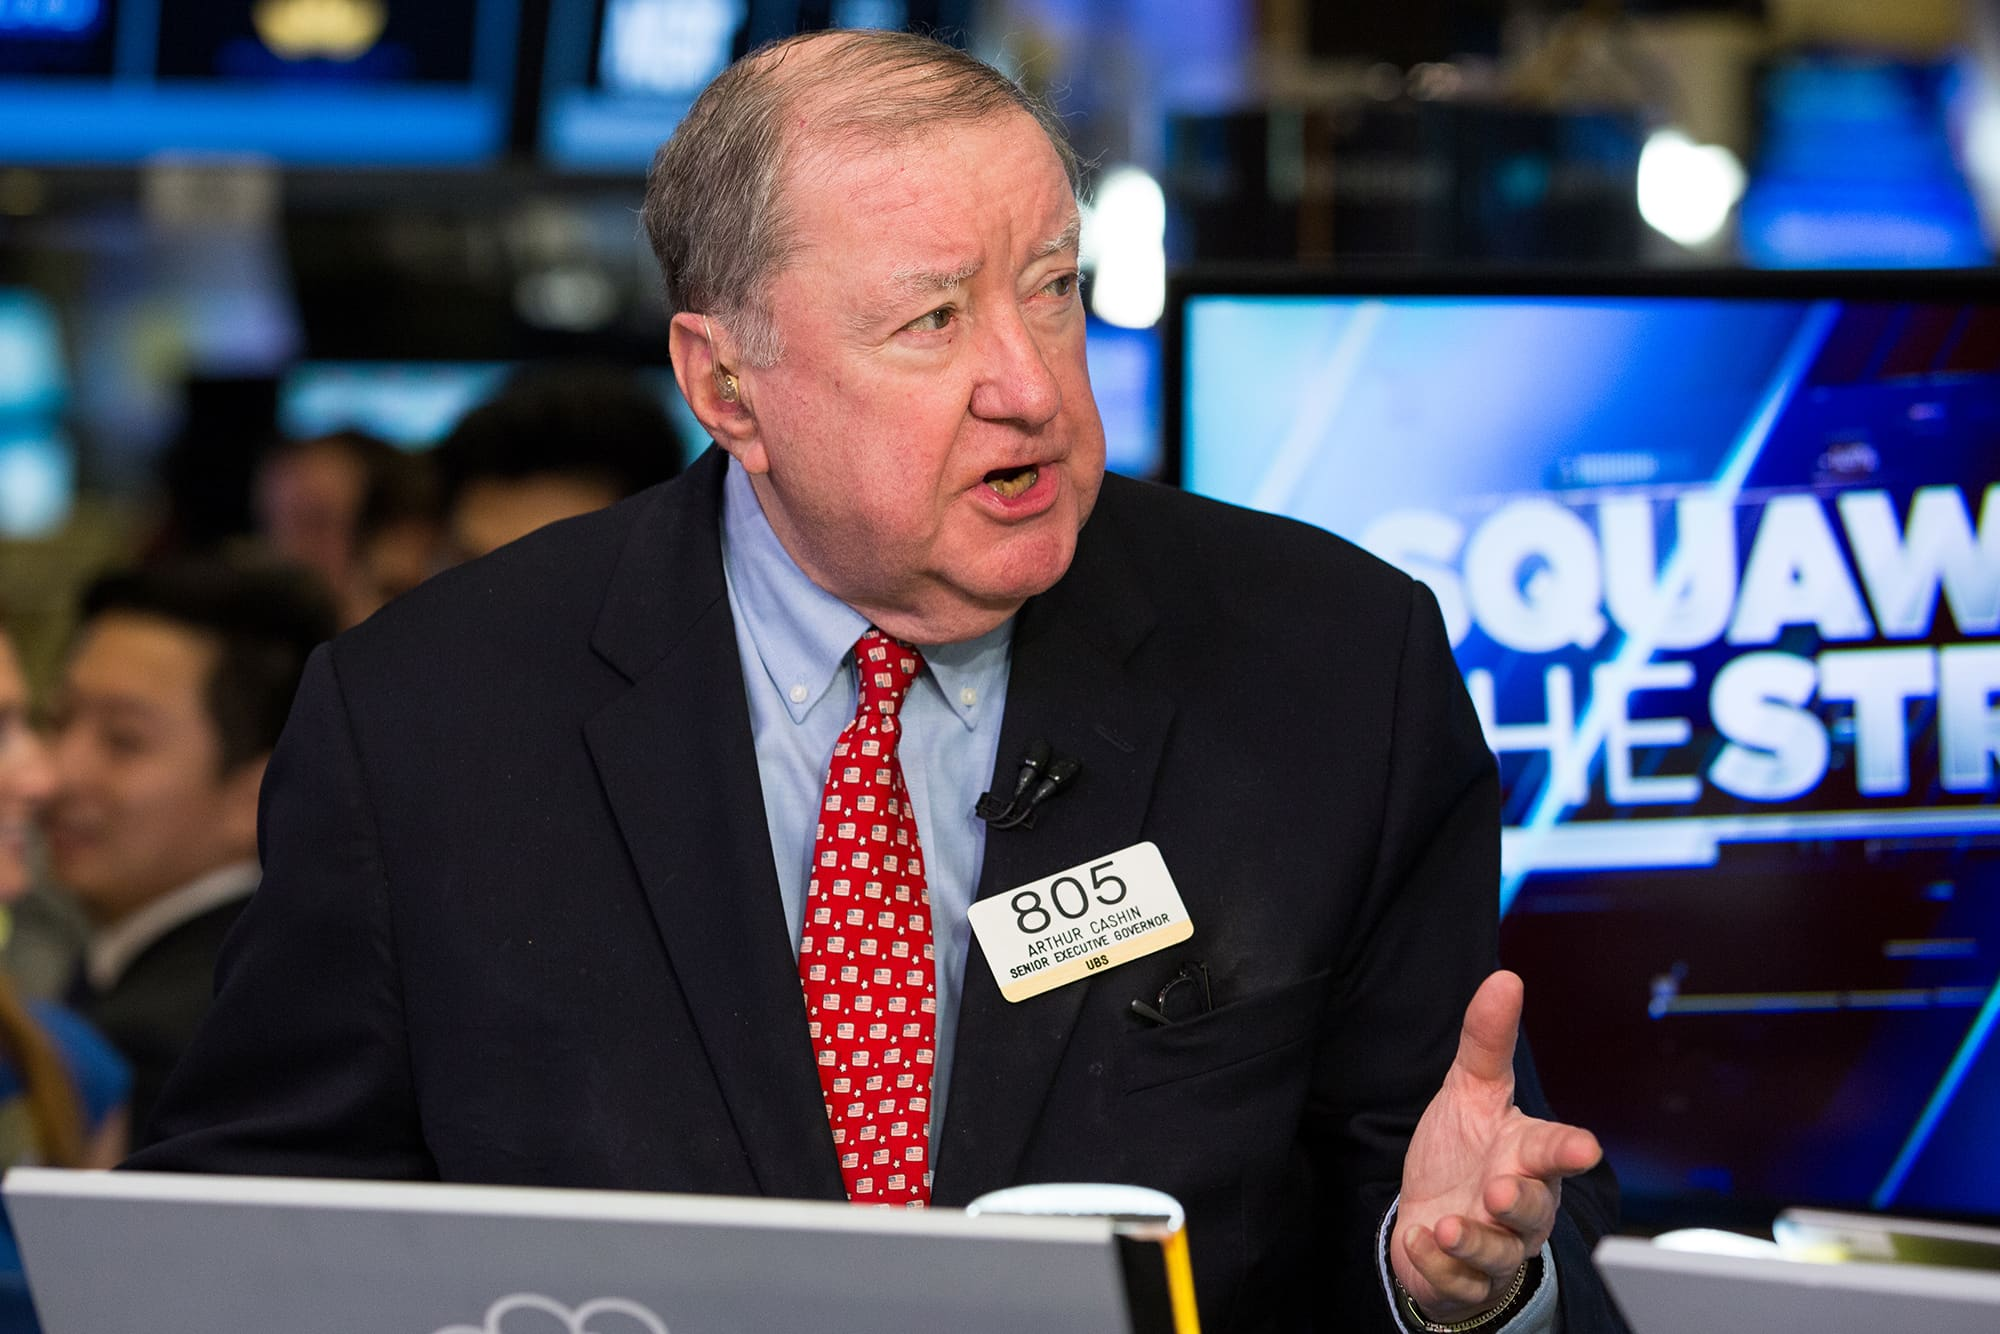 Art Cashin: Wall Street is more concerned about US-China trade than possible Trump impeachment